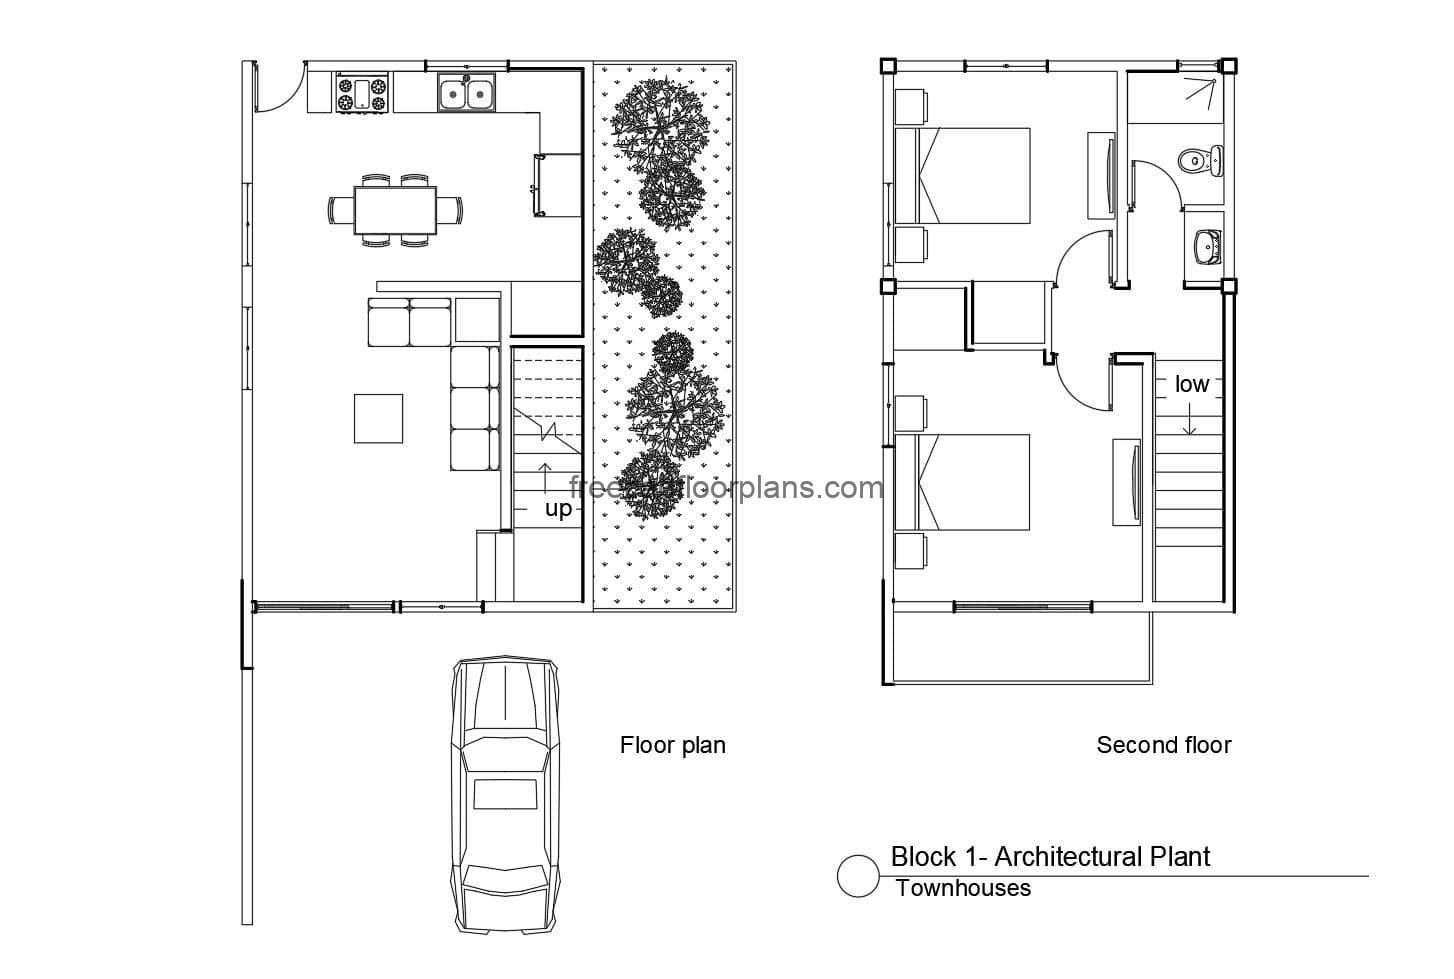 Full autocad project Townhouse for download